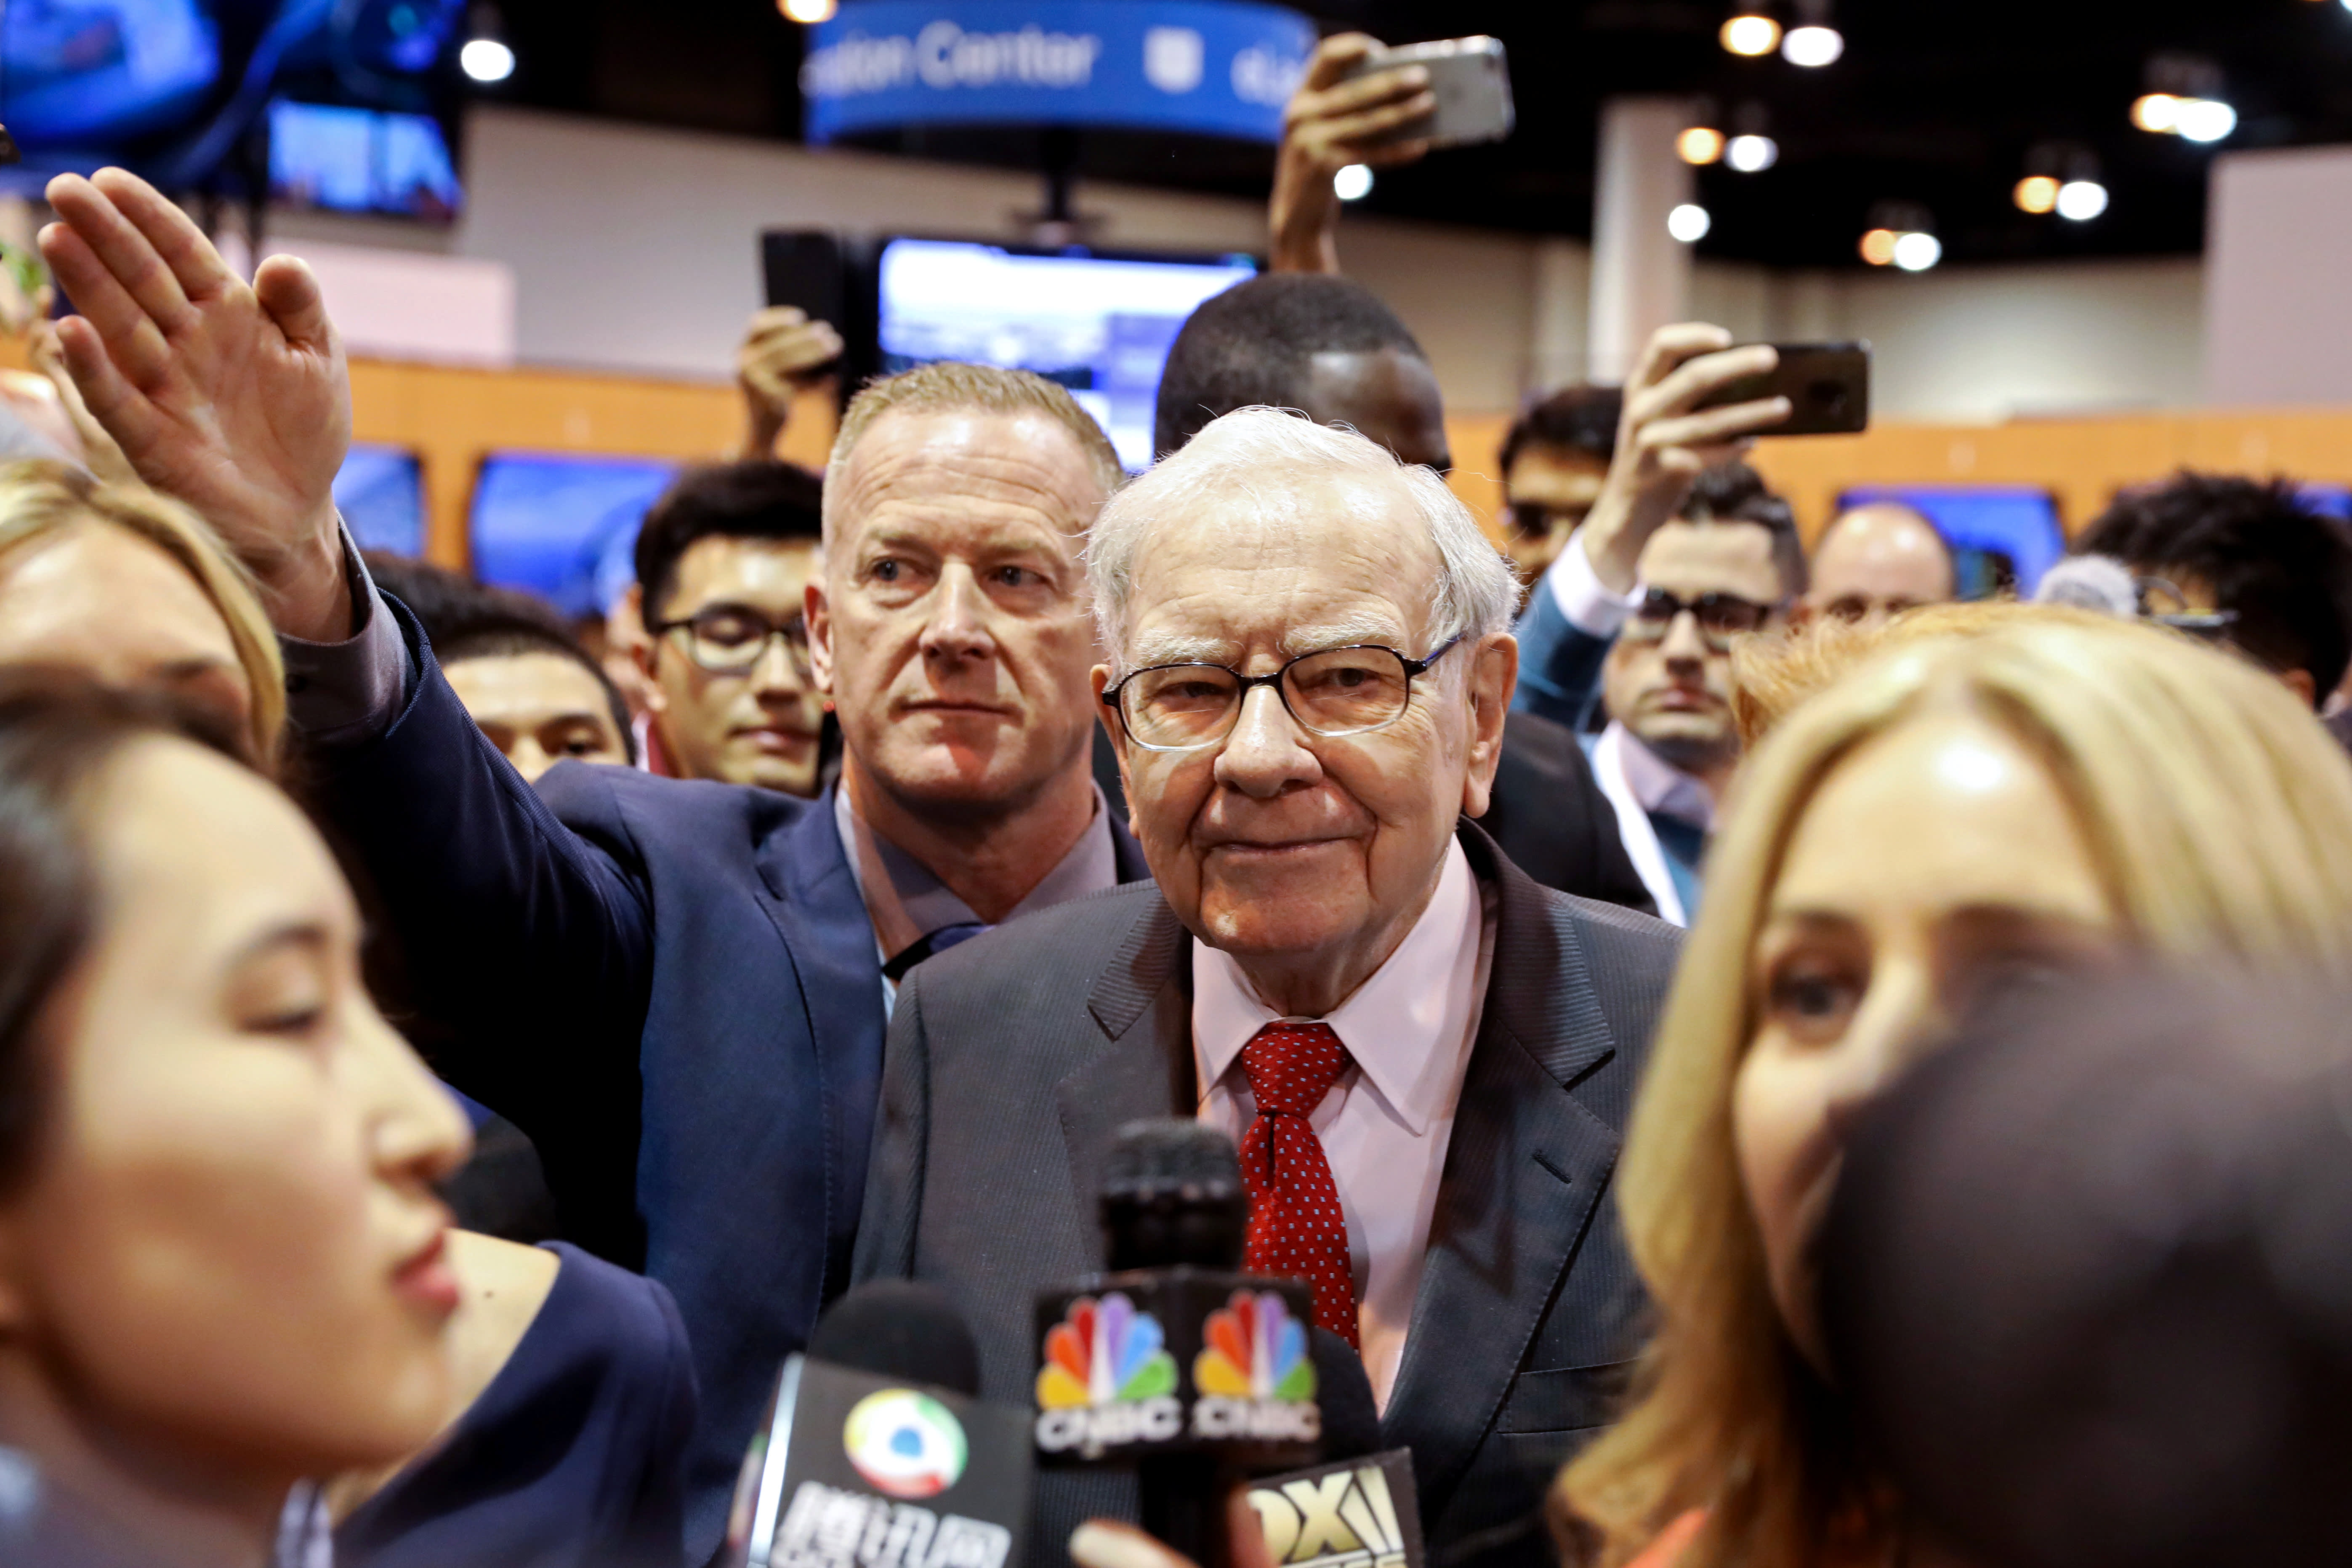 Berkshire Hathaway Chairman Warren Buffett walks through the exhibit hall as shareholders gather to hear from the billionaire investor at Berkshire Hathaway Inc's annual shareholder meeting in Omaha, Nebraska, U.S., May 4, 2019.